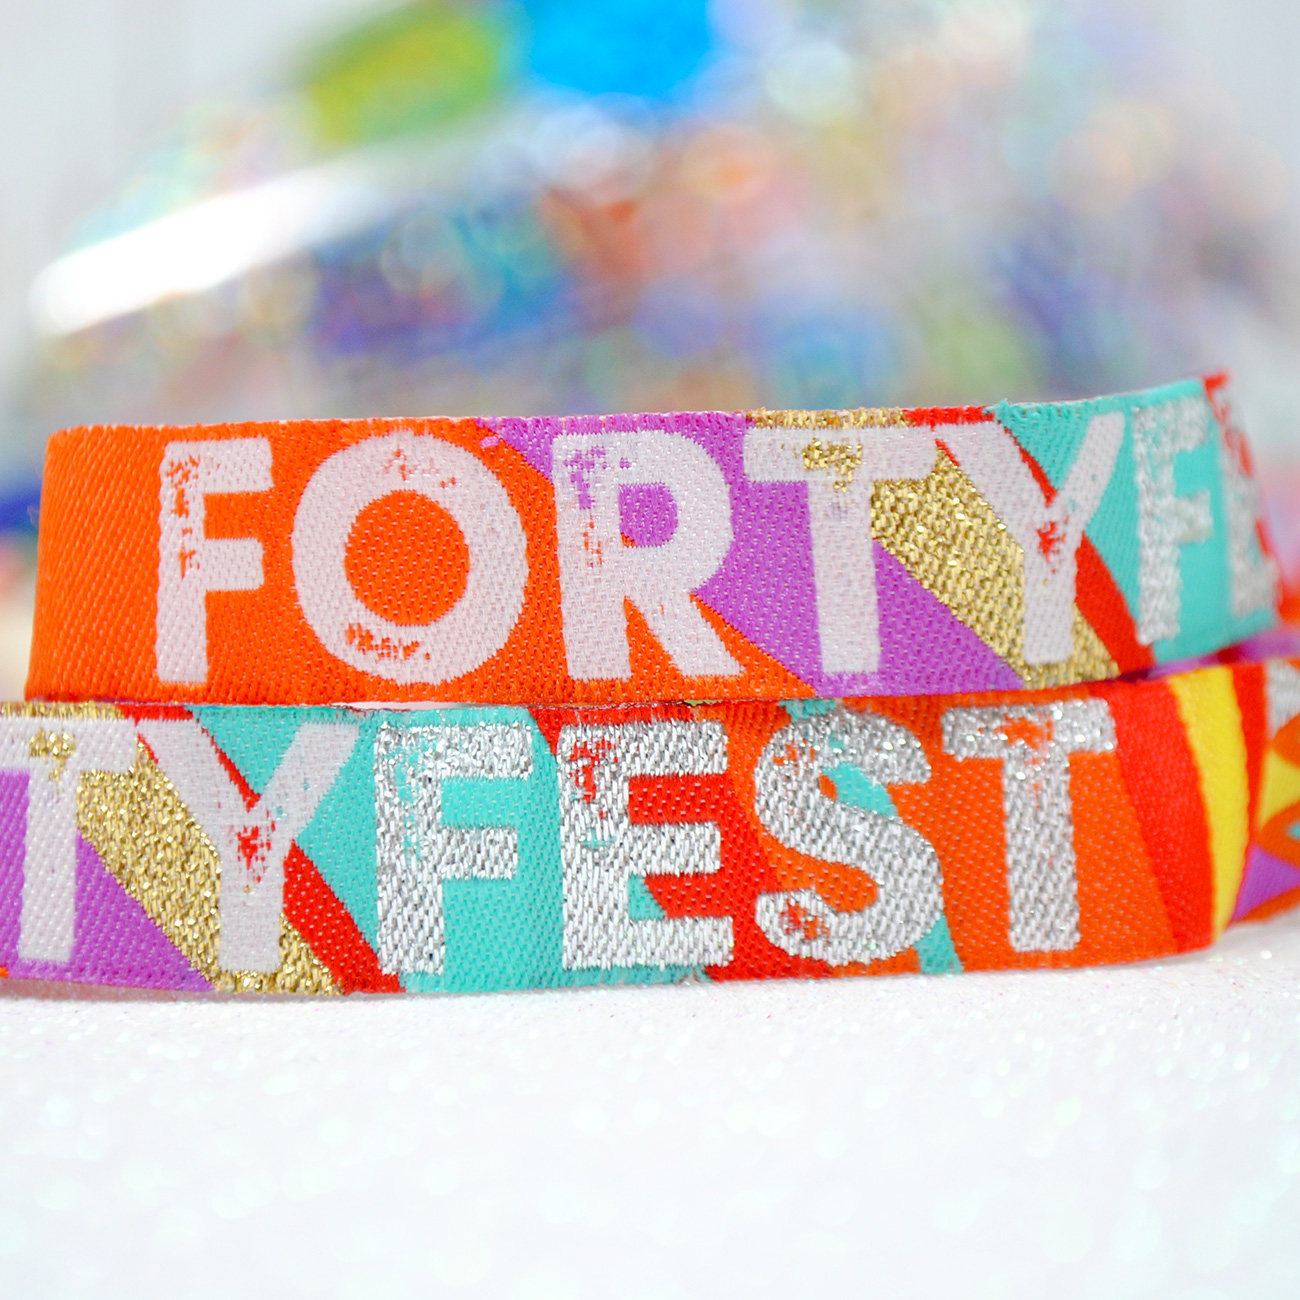 forty fest 40th birthday party wristbands